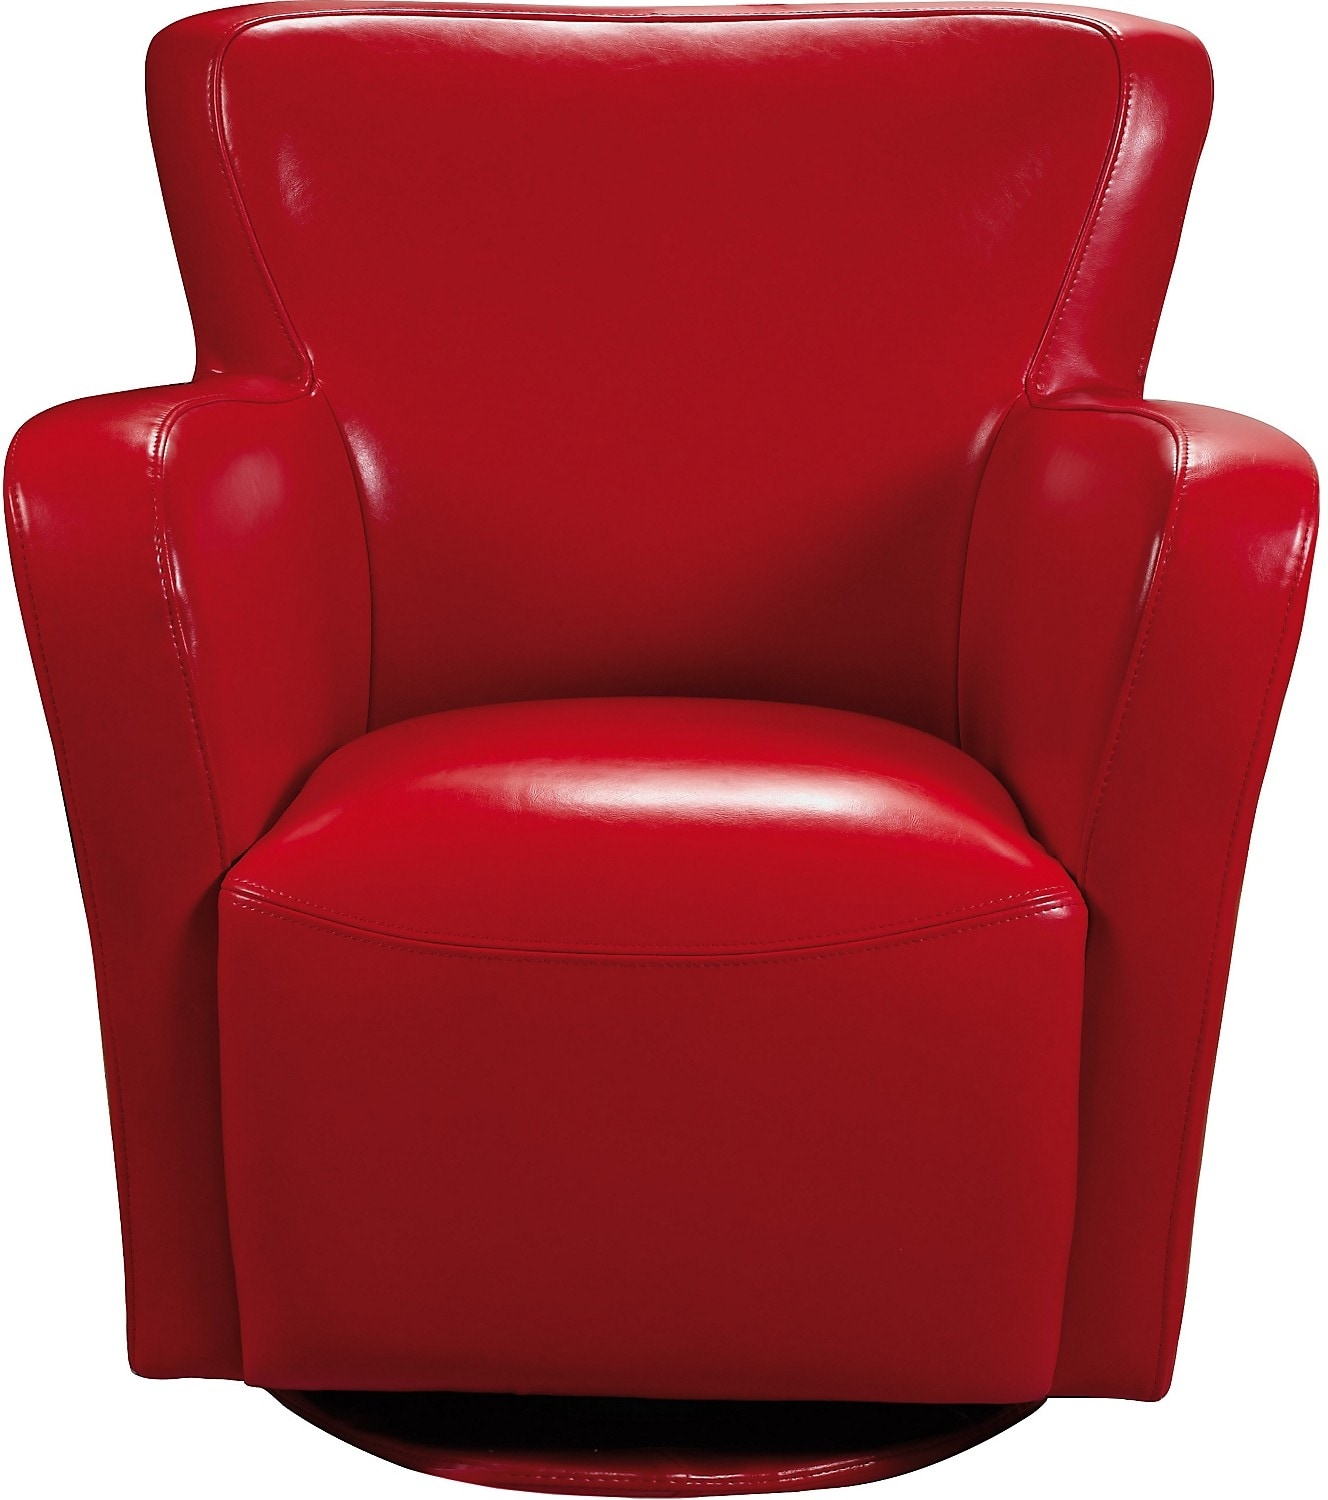 Living Room Furniture - Bonded Leather Swivel Chair - Red